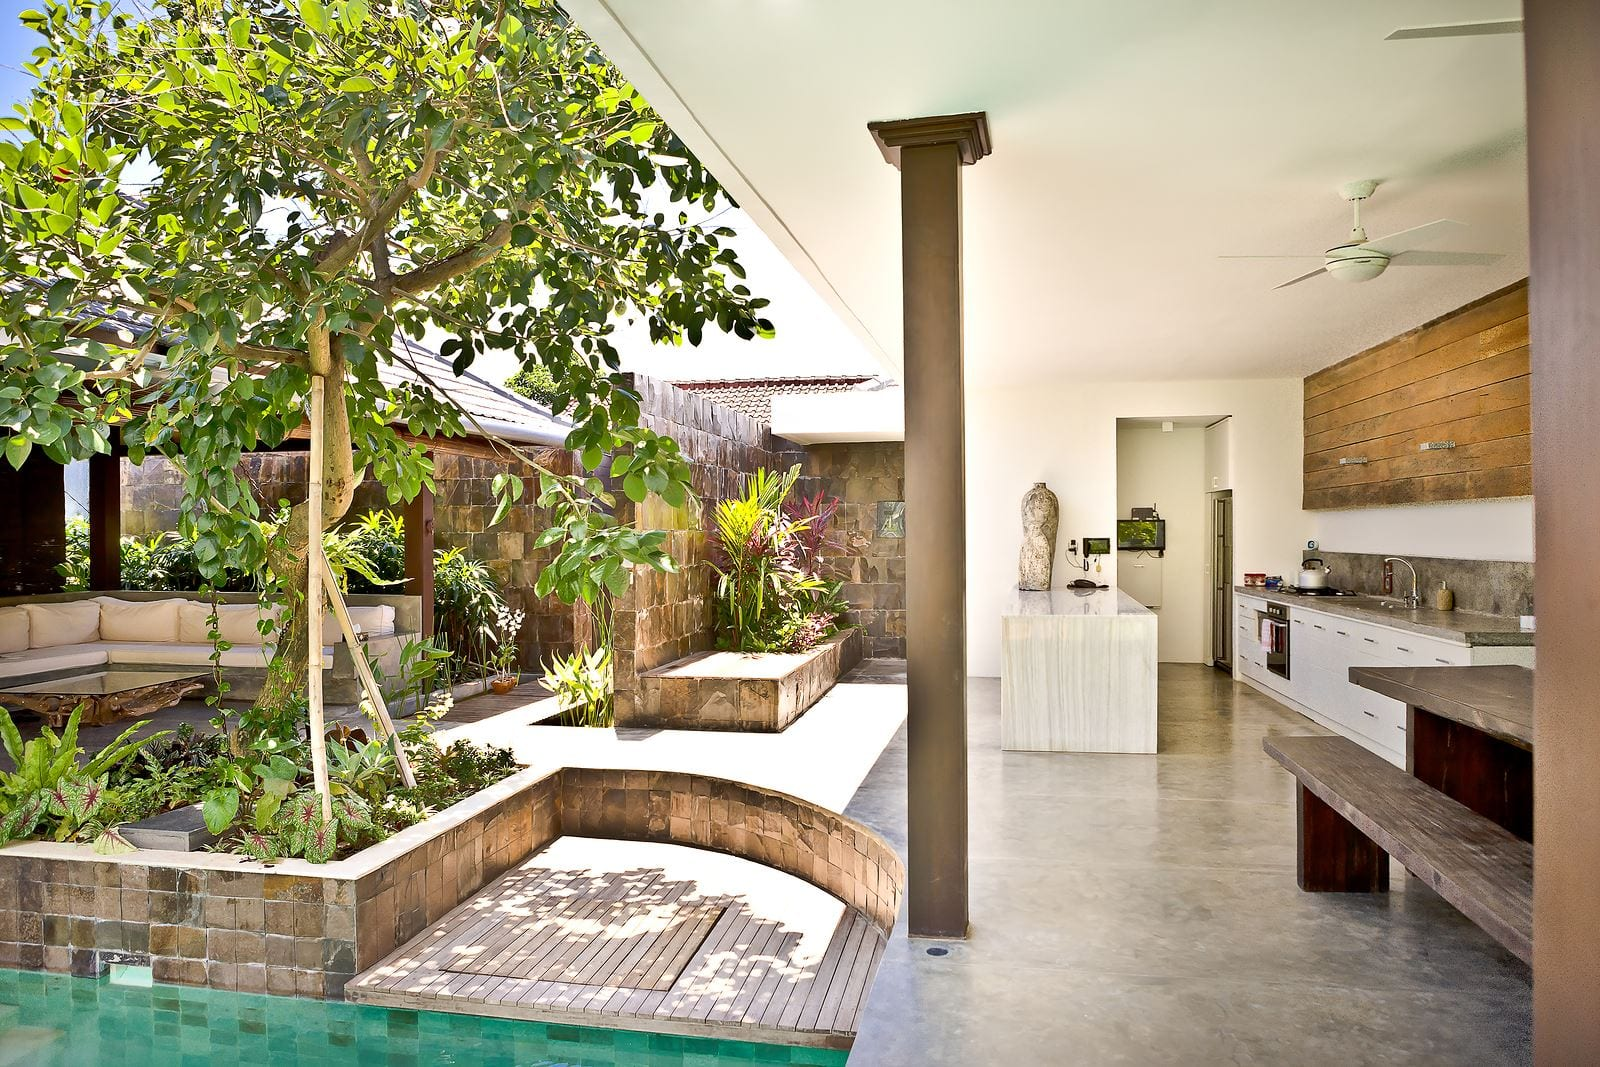 Outdoor Features That Will Make Your Investment Property More Valuable